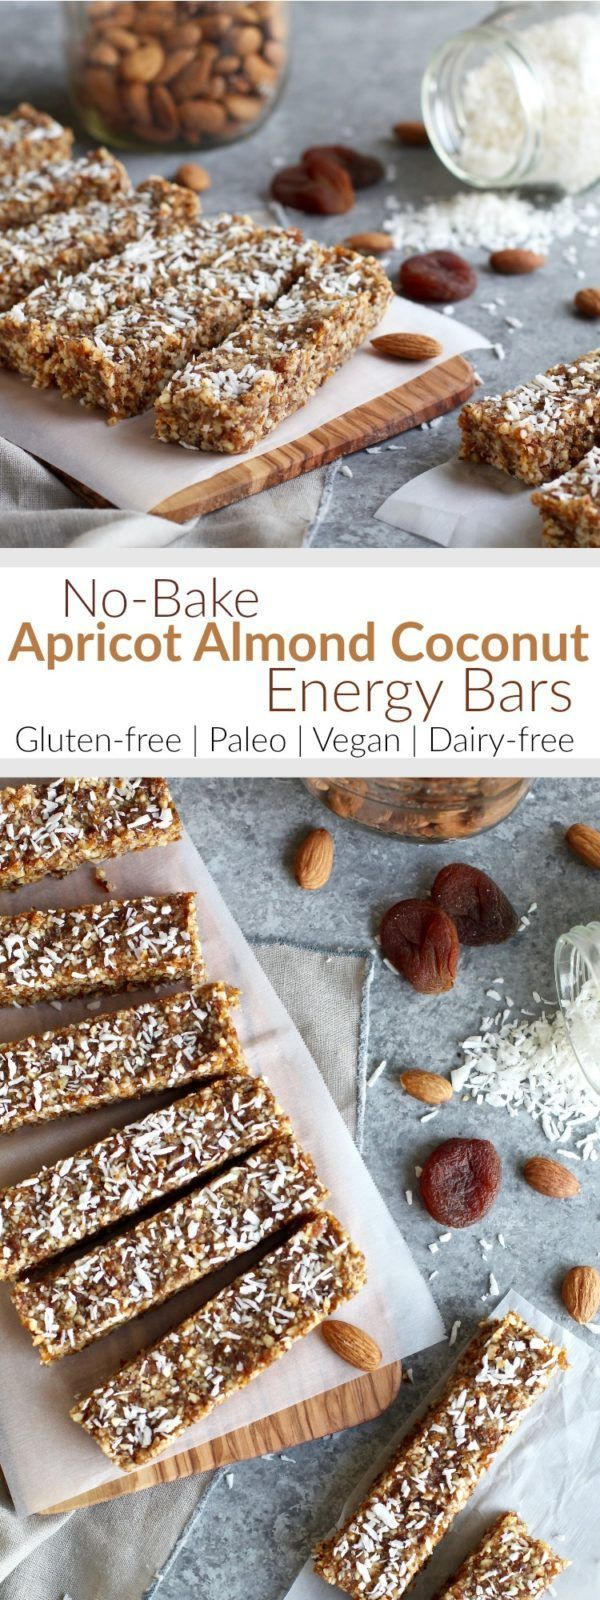 No Bake Apricot Almond Coconut Energy Bars   The Real Food Dietitians